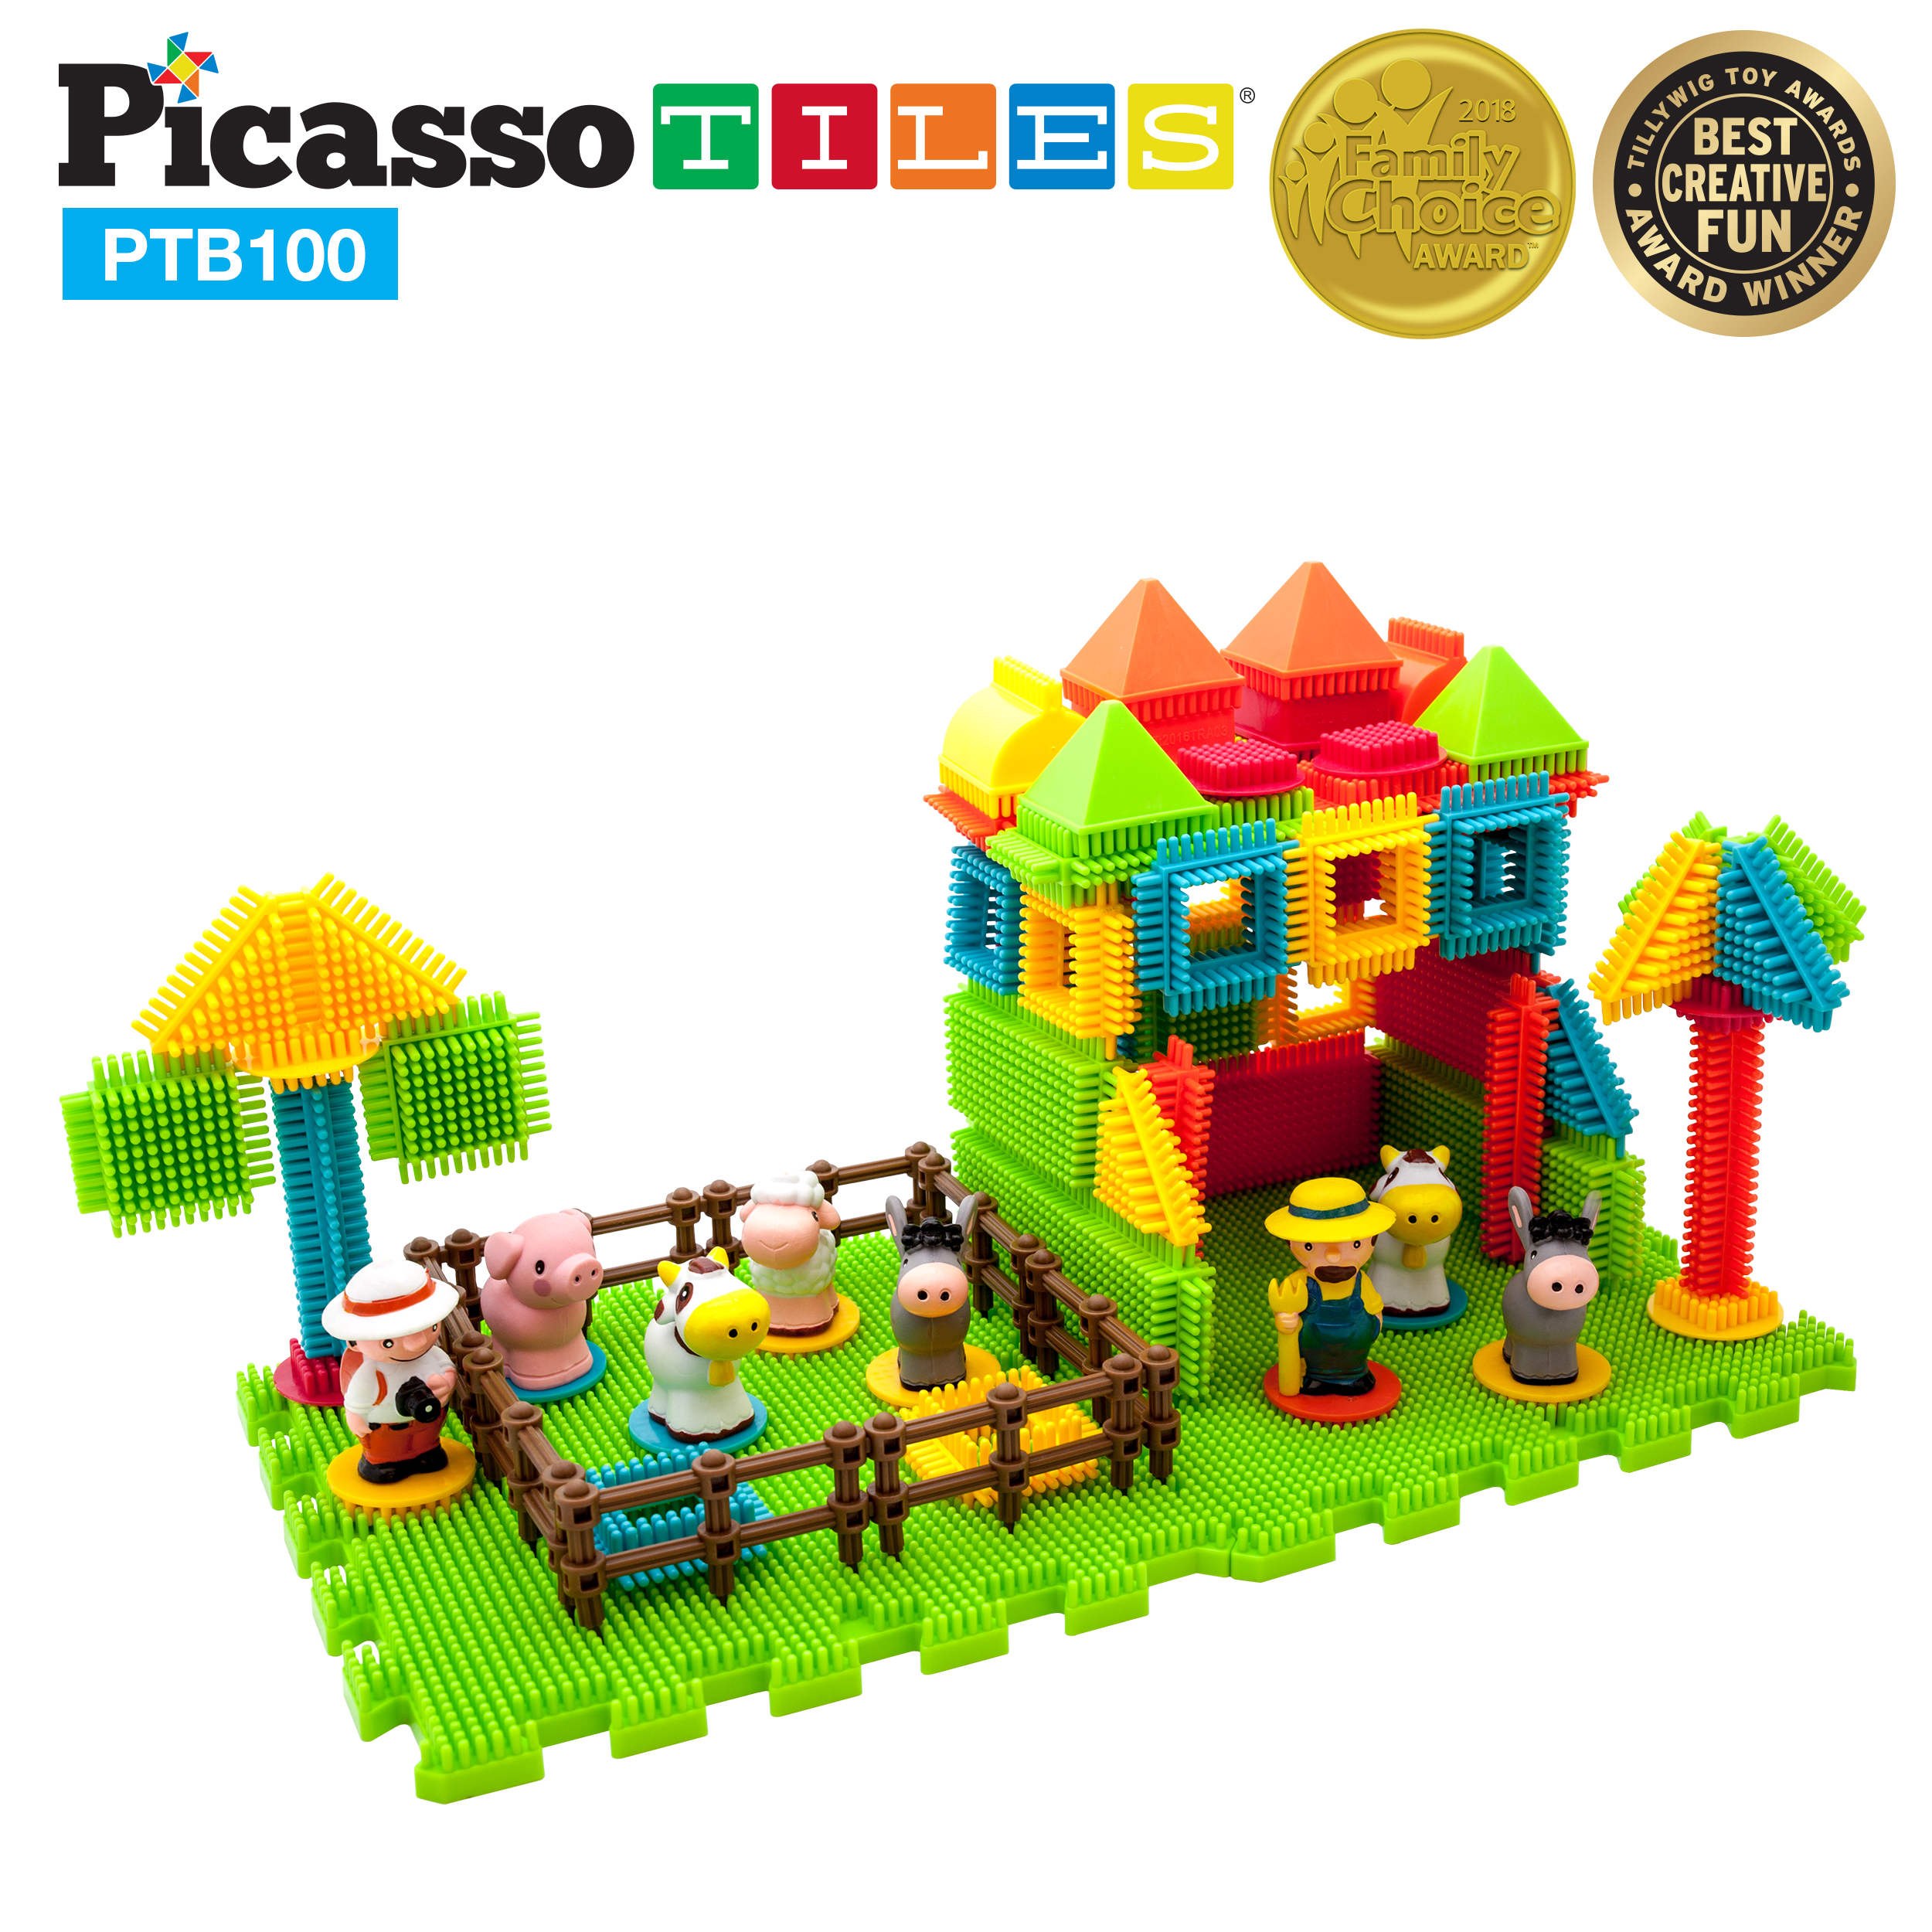 PicassoTiles PTB100 100pcs Bristle Shape 3D STEM Building Blocks Tiles Farm Theme Set... by PicassoTiles